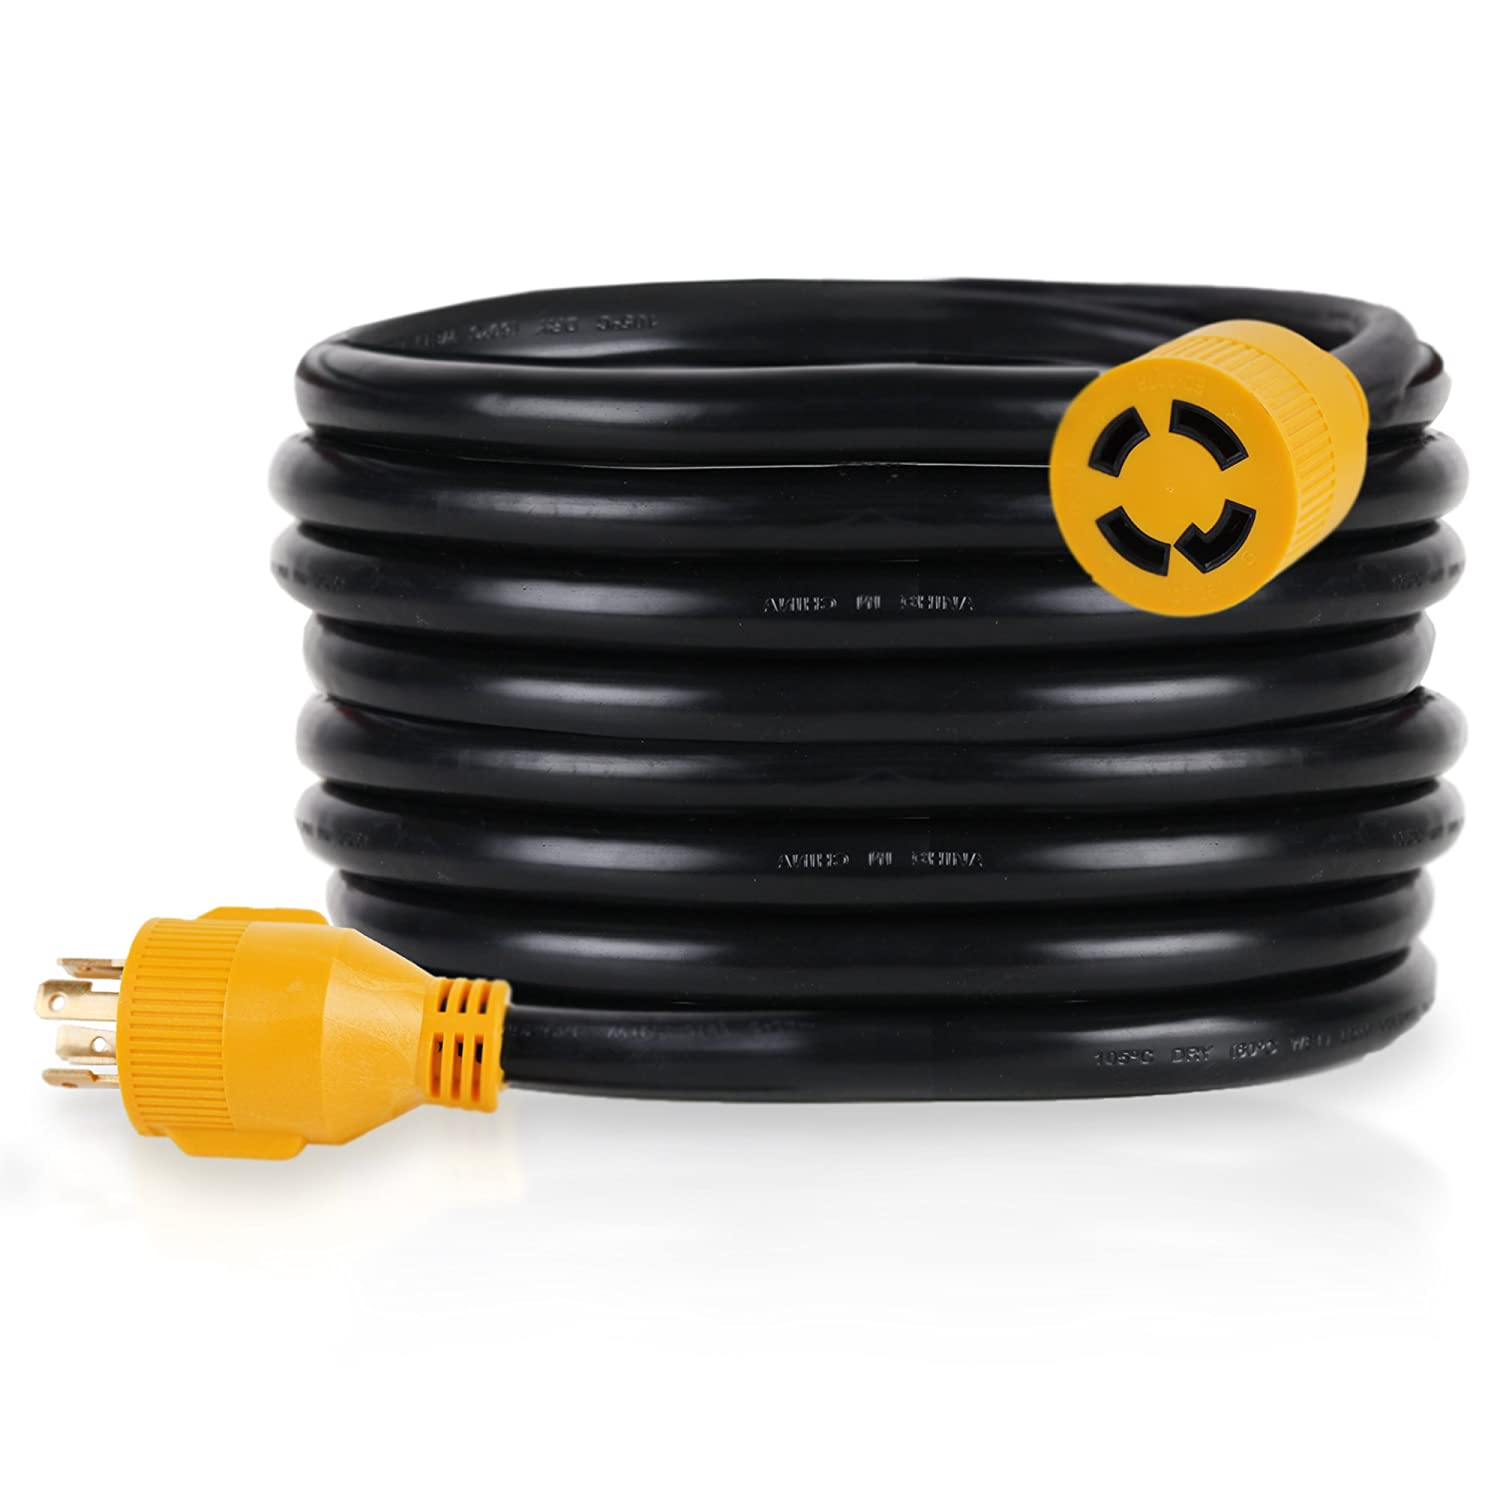 PROLINE Power 25-FT Generator Extension Cord, 30Amp, 4 Prong Locking Heavy Duty (L14-30) 125-240V 10/4 SJTW (25) DRM Products Inc.